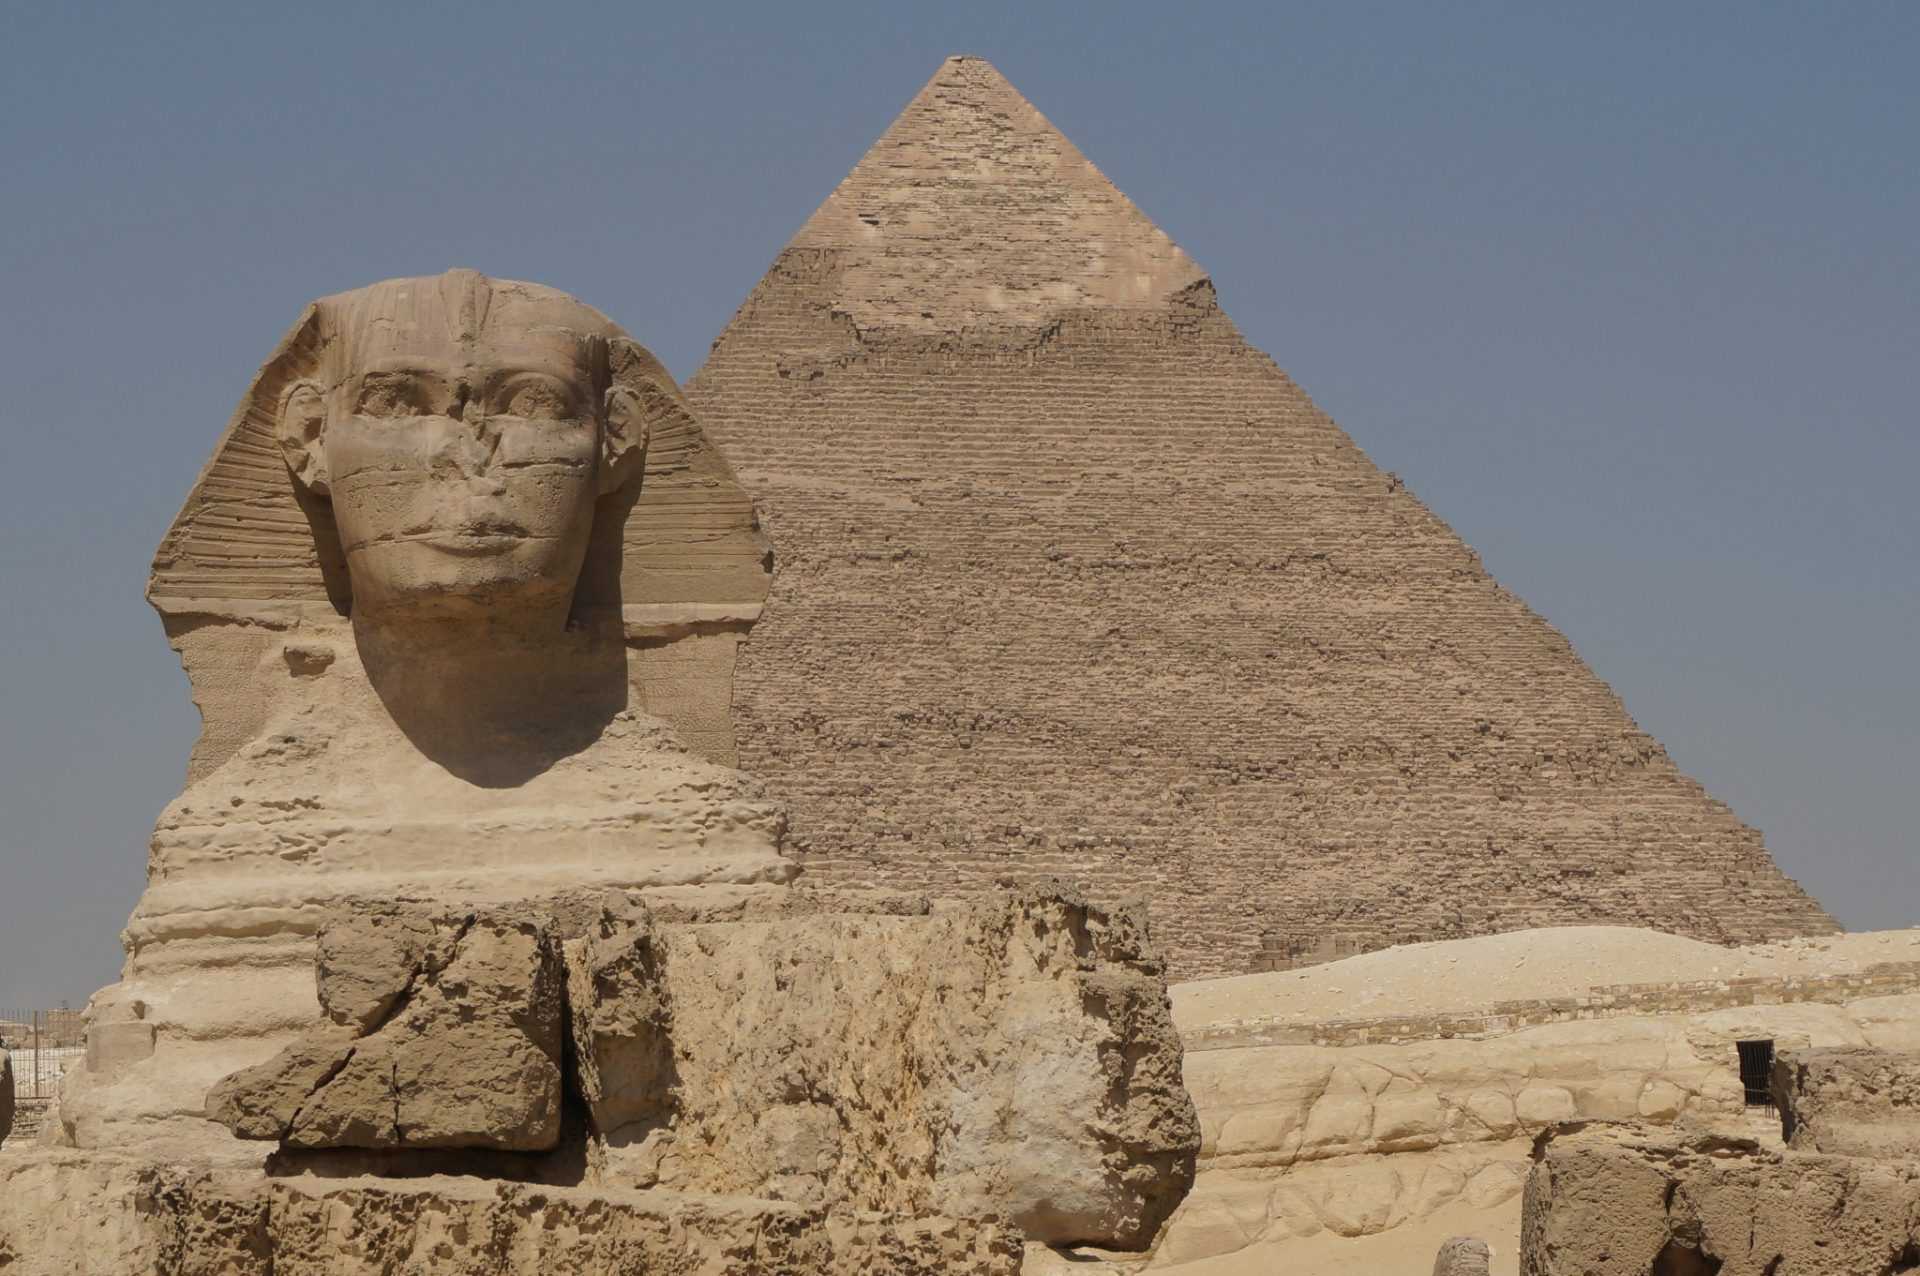 Sphinx in front of Great Pyramid in Egypt